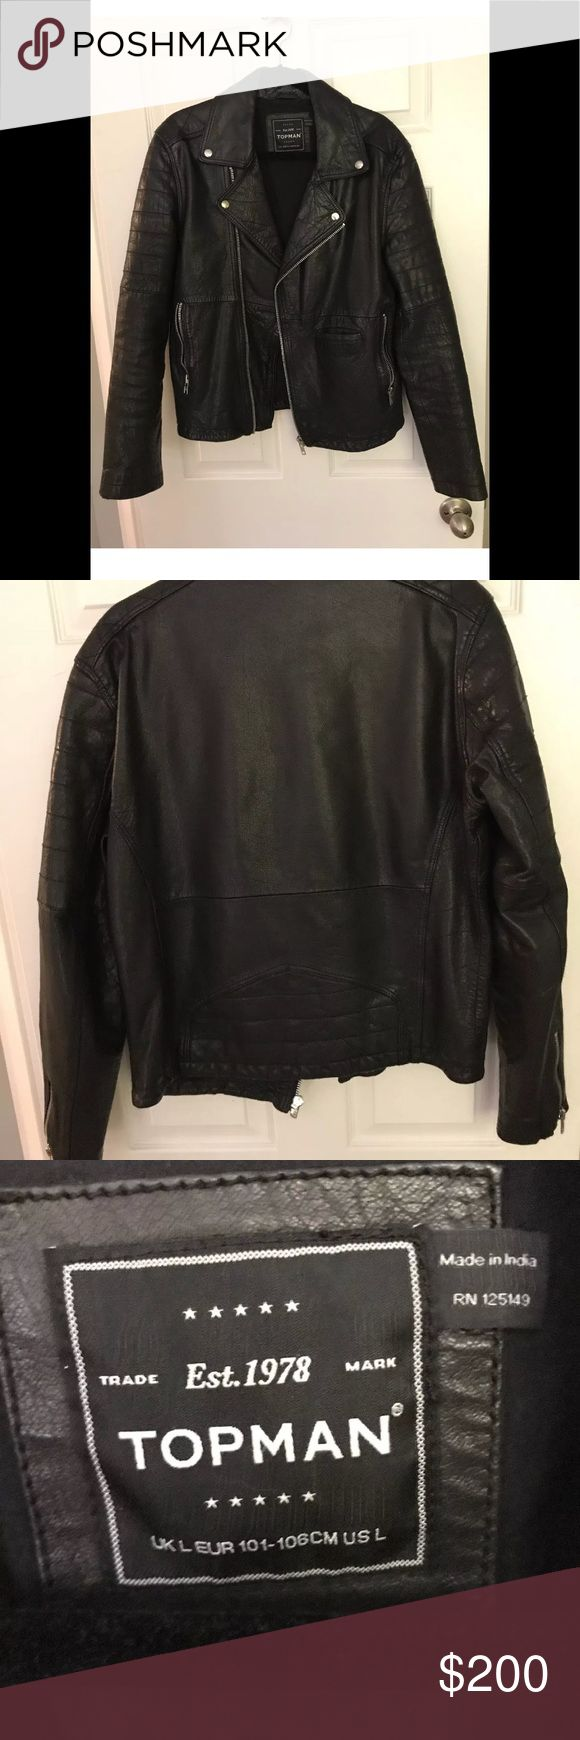 New Topman Leather Jacket Large Brand new without tags Topman Jackets & Coats